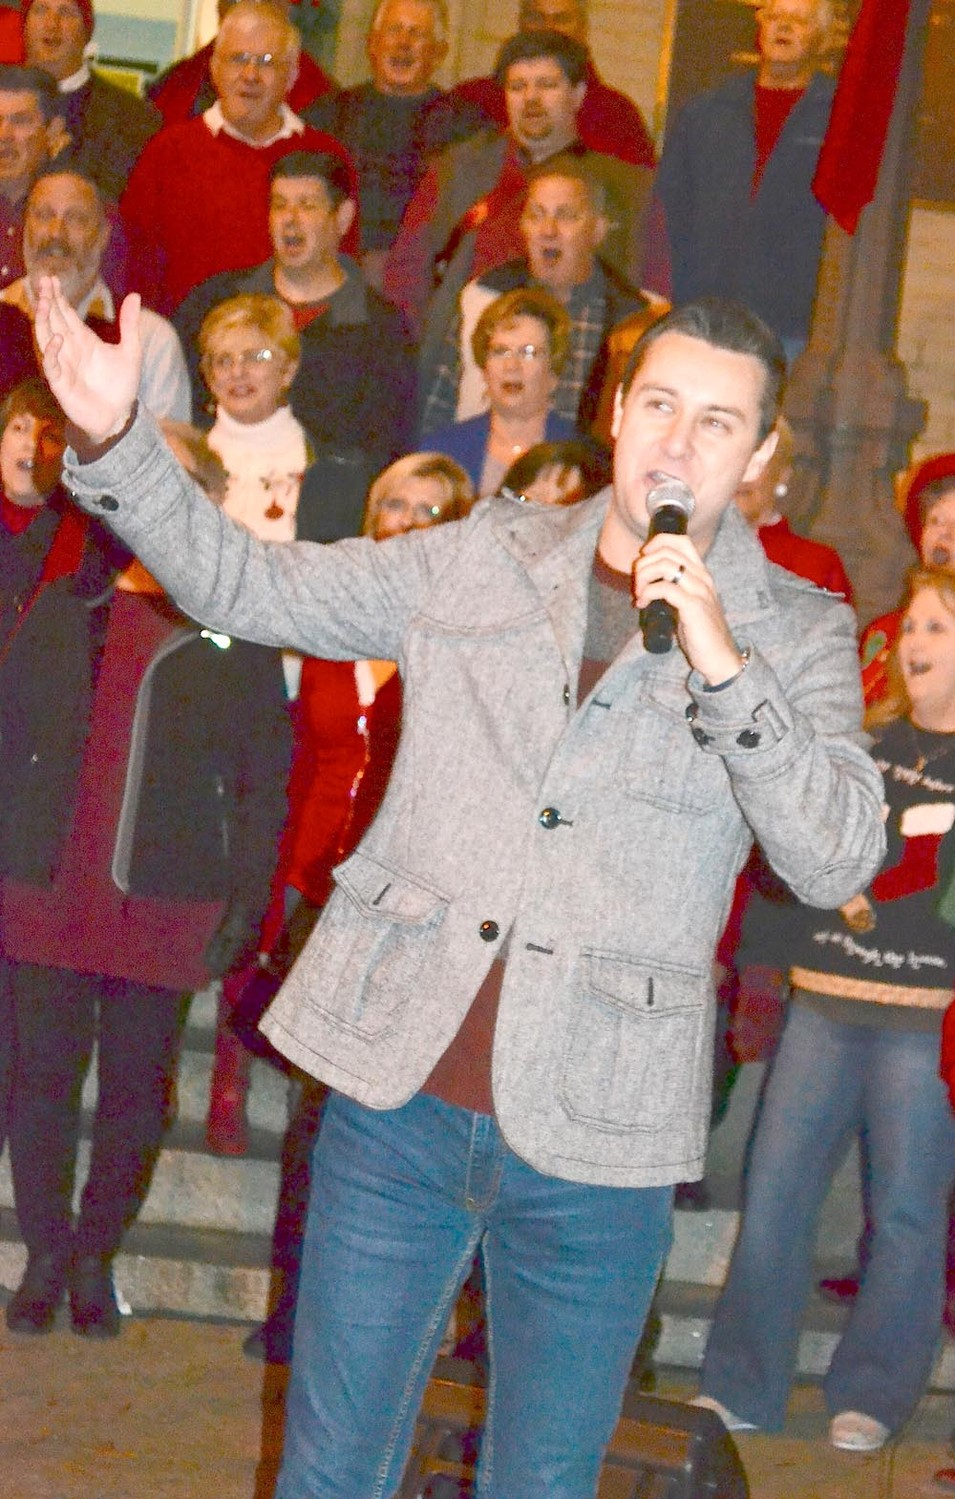 DR. TYLER BRINSON performed with the First Baptist Church Friday at the downtown Christmas tree lighting.